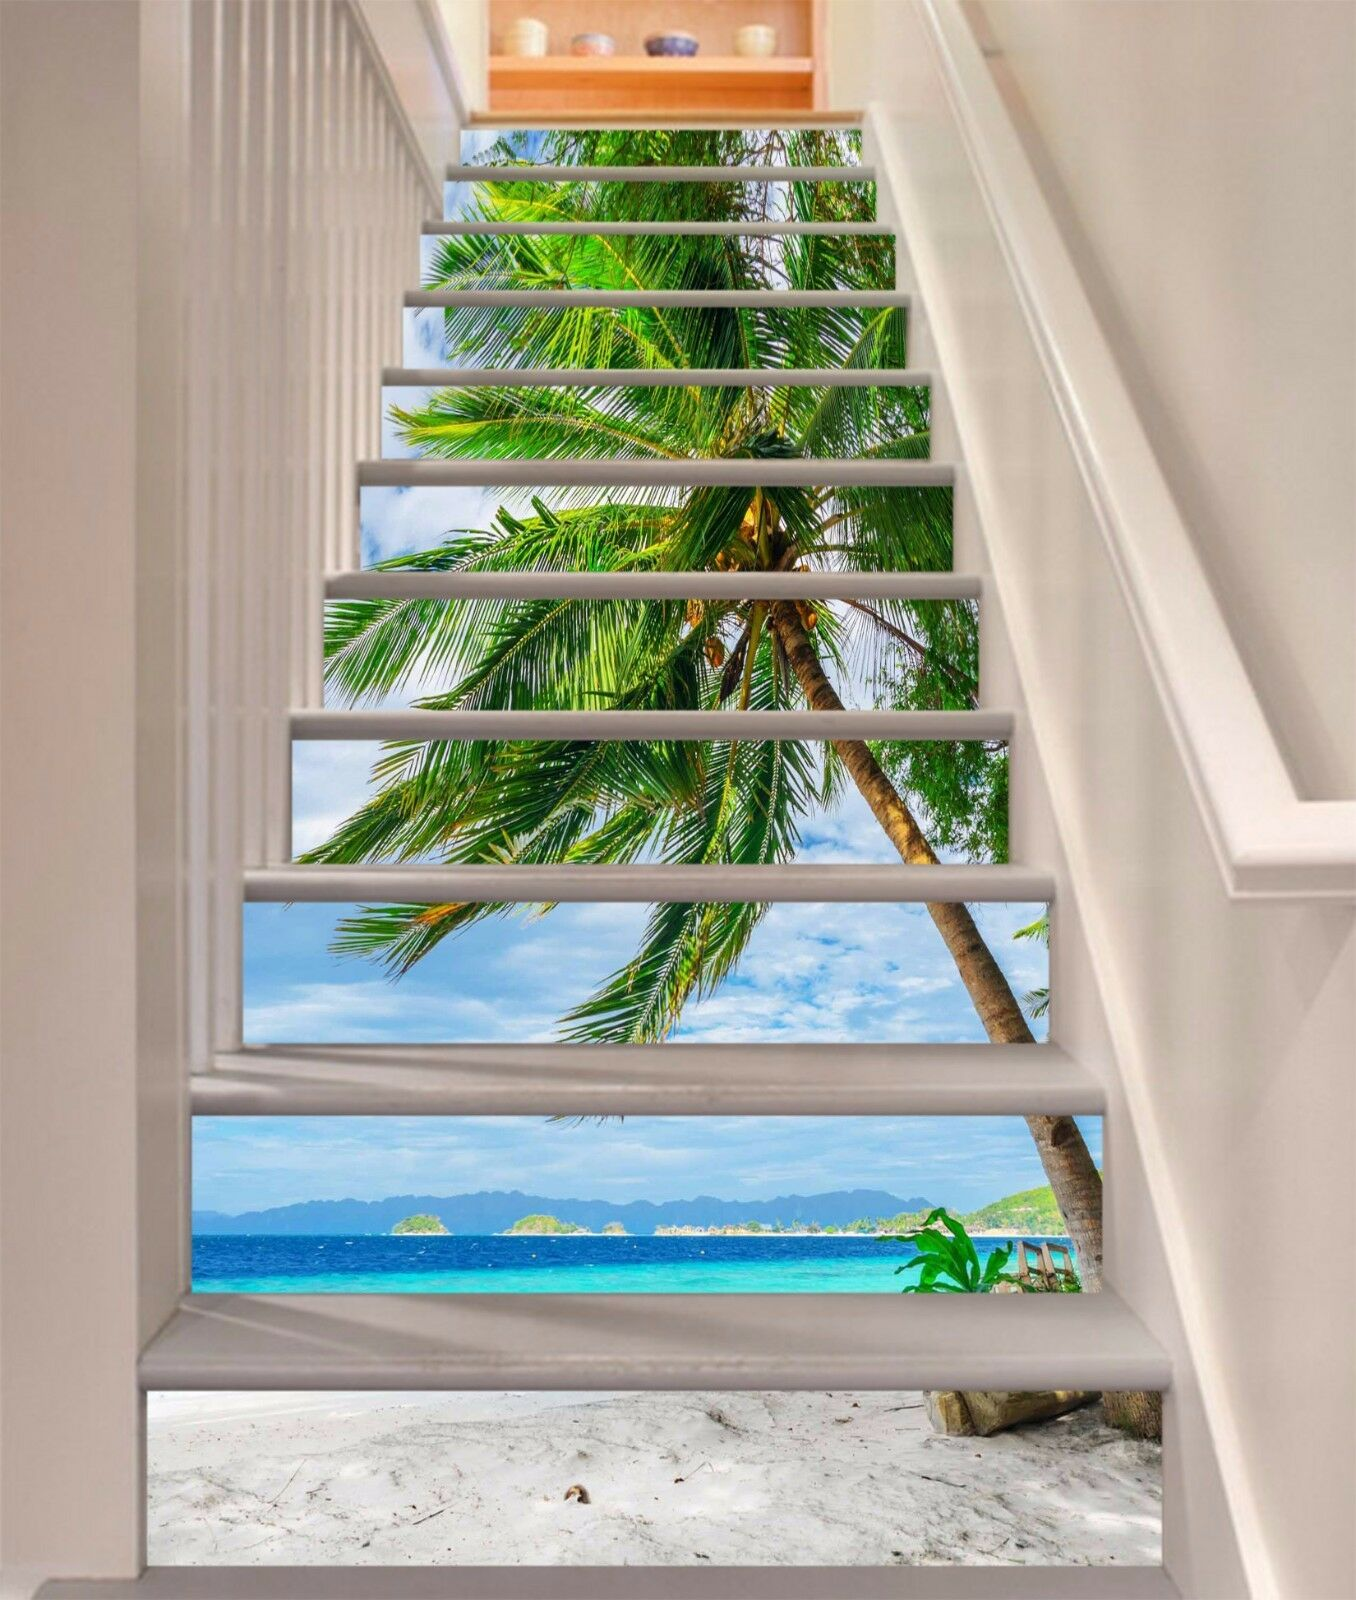 3D Coconut trees 38 Stair Risers Decoration Photo Mural Vinyl Decal Wallpaper UK